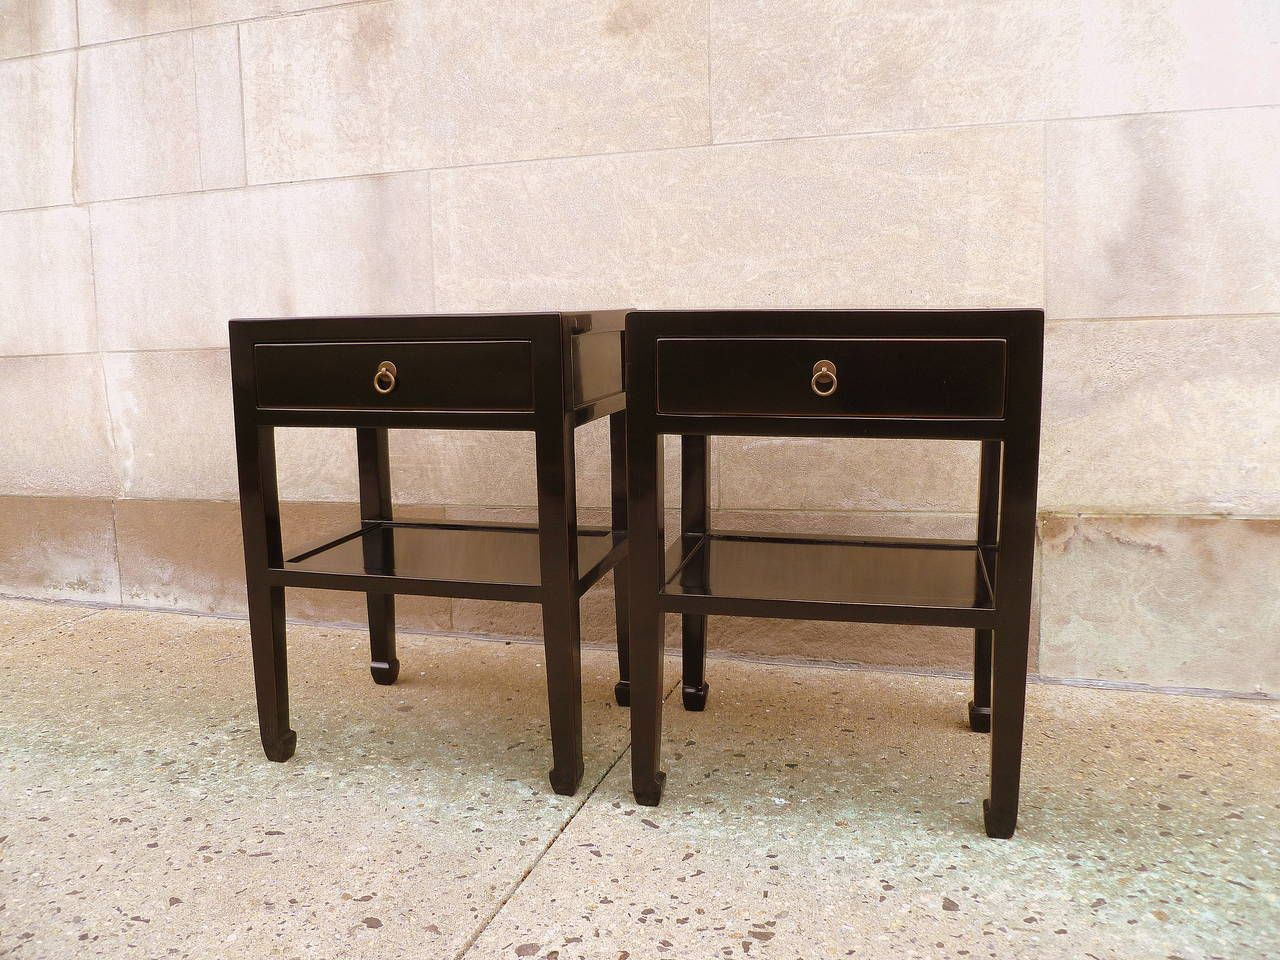 A pair of black lacquer end tables with shelf and drawer